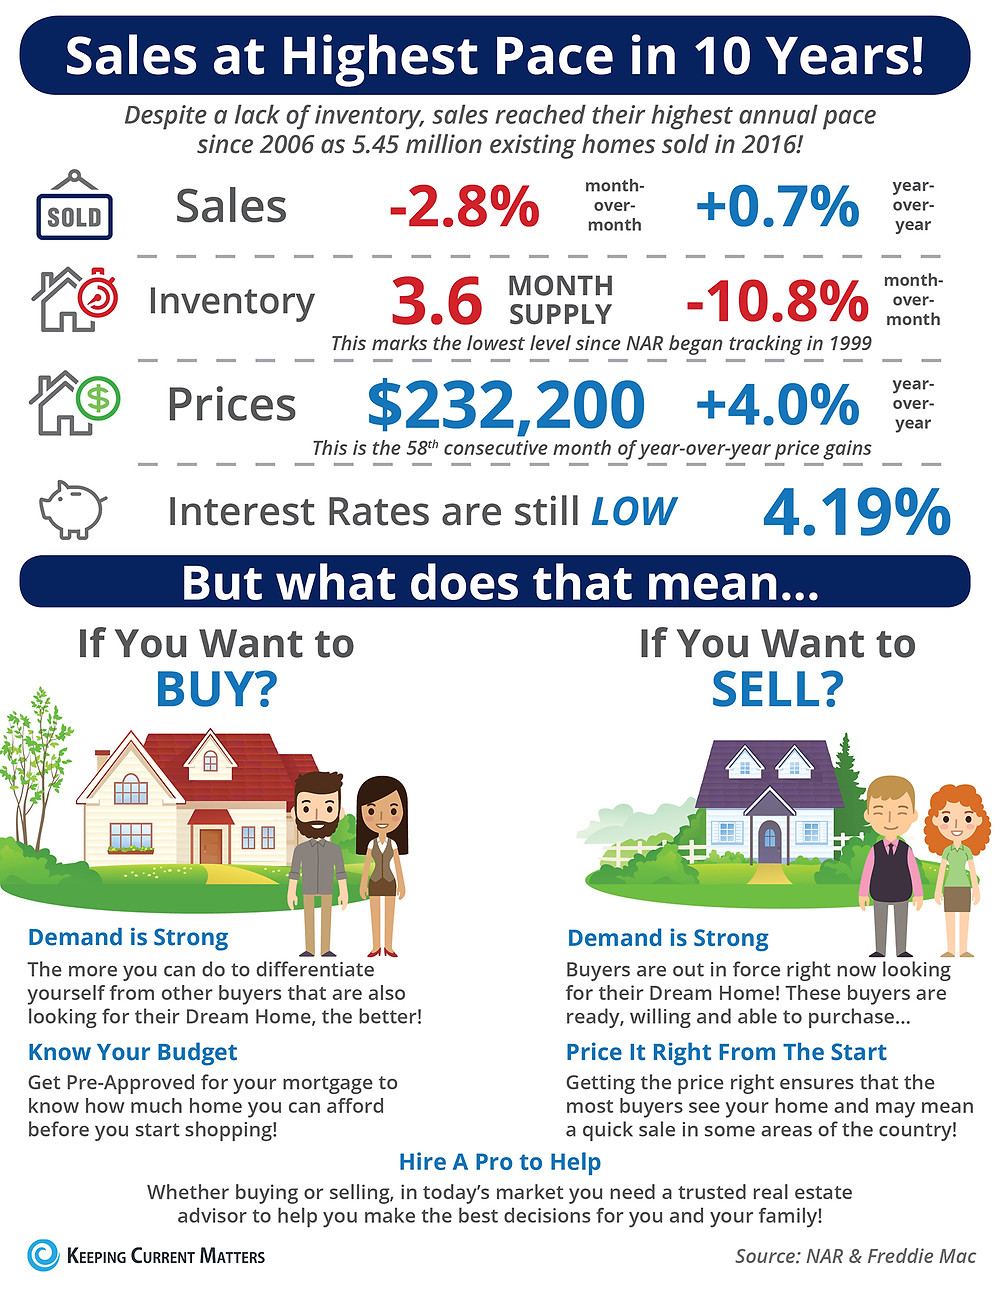 Sales at Highest Pace in 10 Years! [INFOGRAPHIC] | Keeping Current Matters